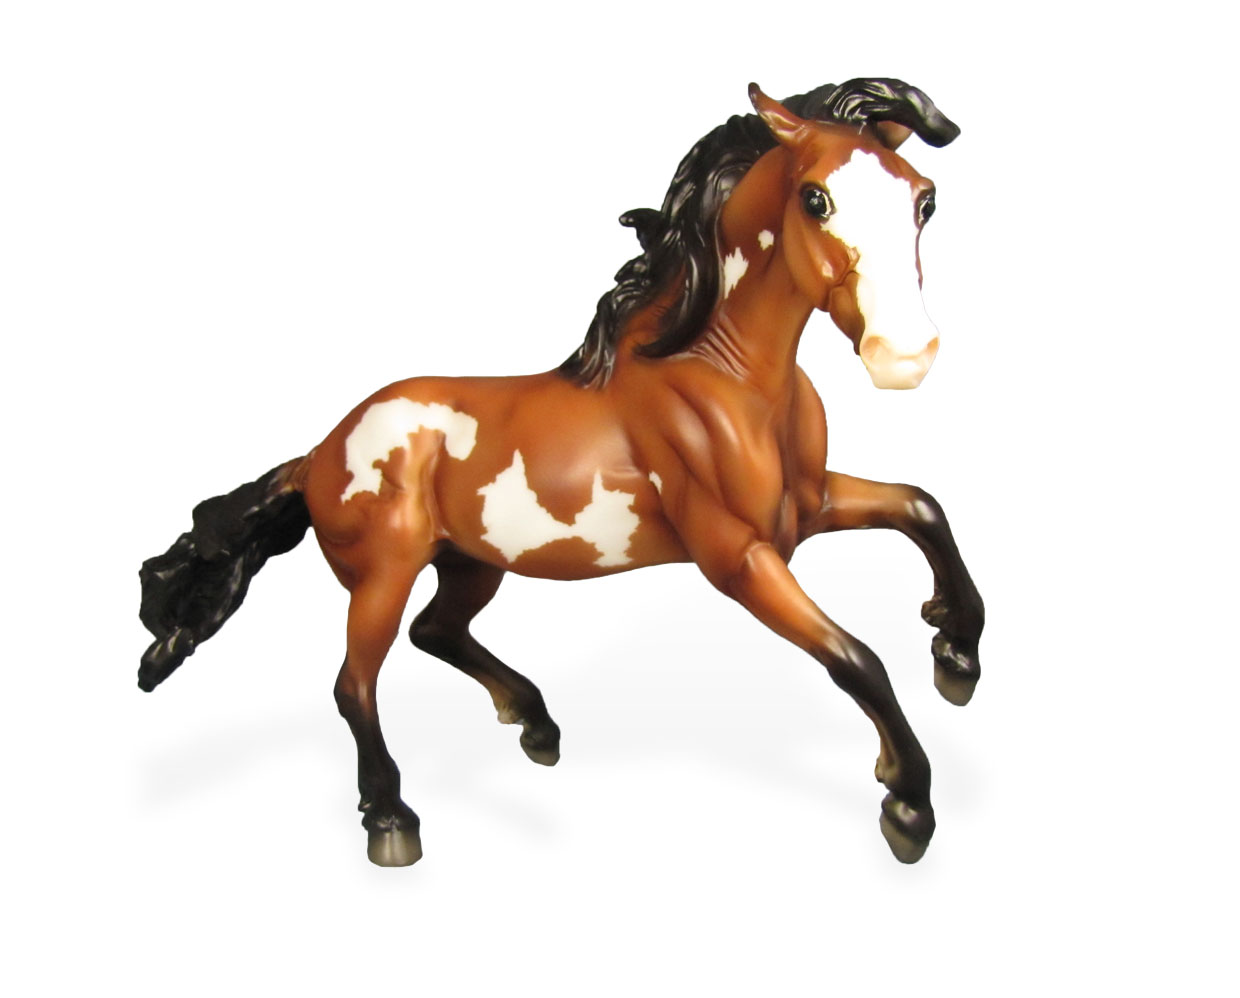 Breyer horses for sale in canada - How is salt water taffy made